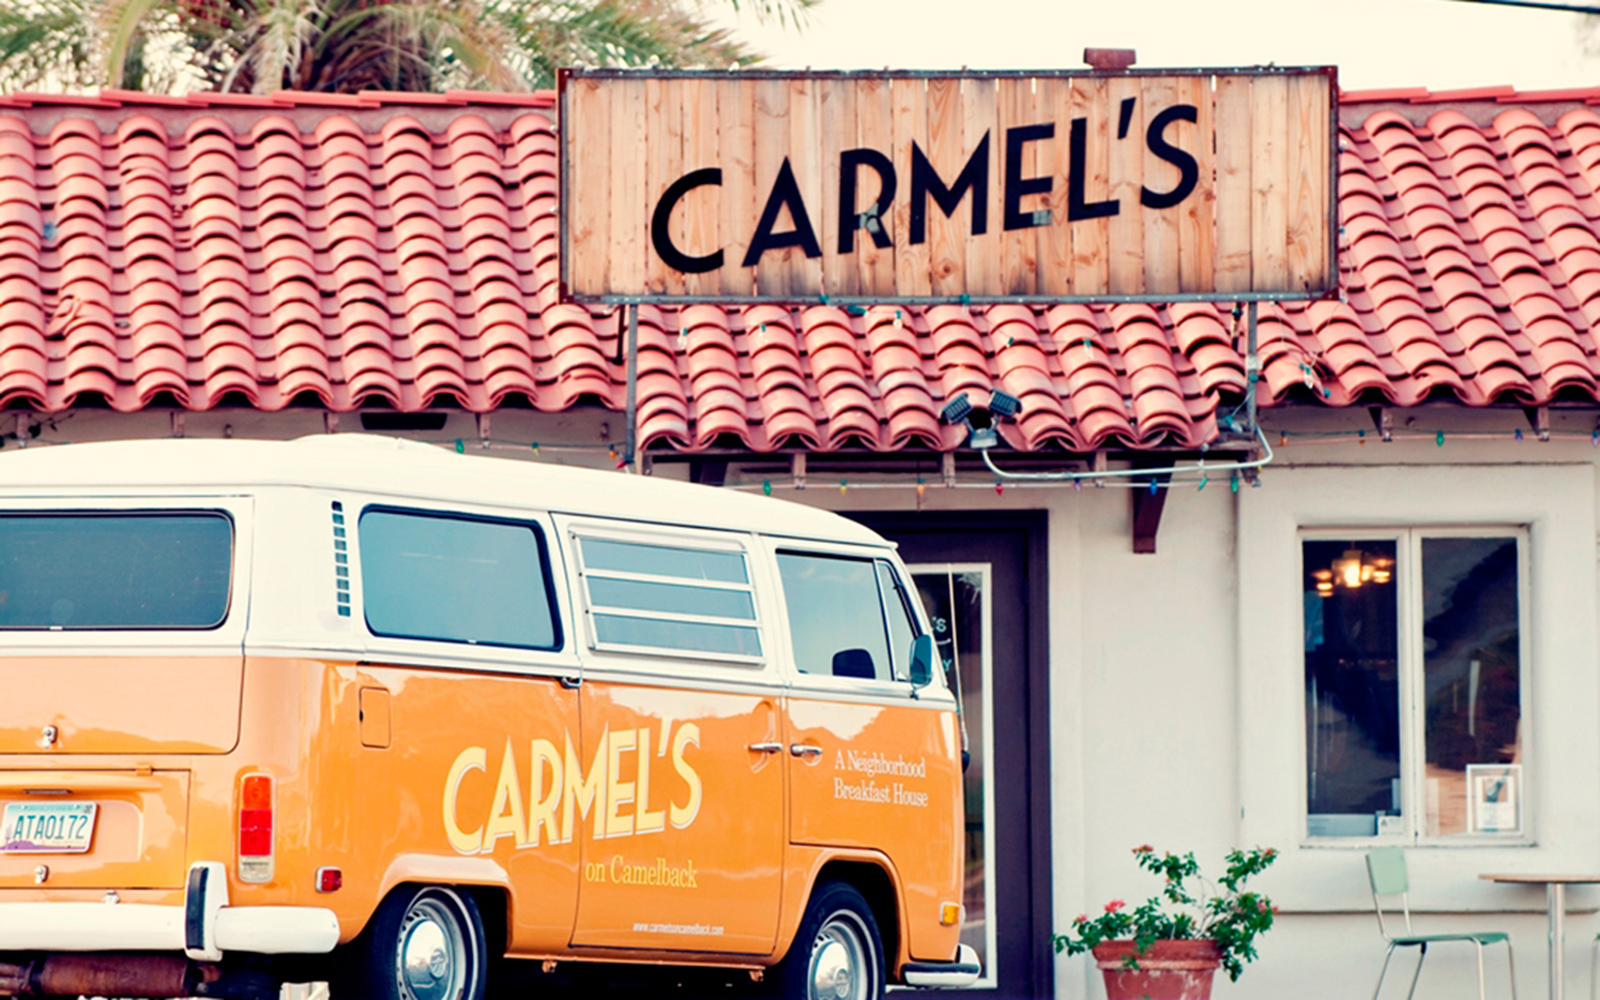 201404-w-americas-best-places-to-eat-like-a-local-carmels-breakfast-house